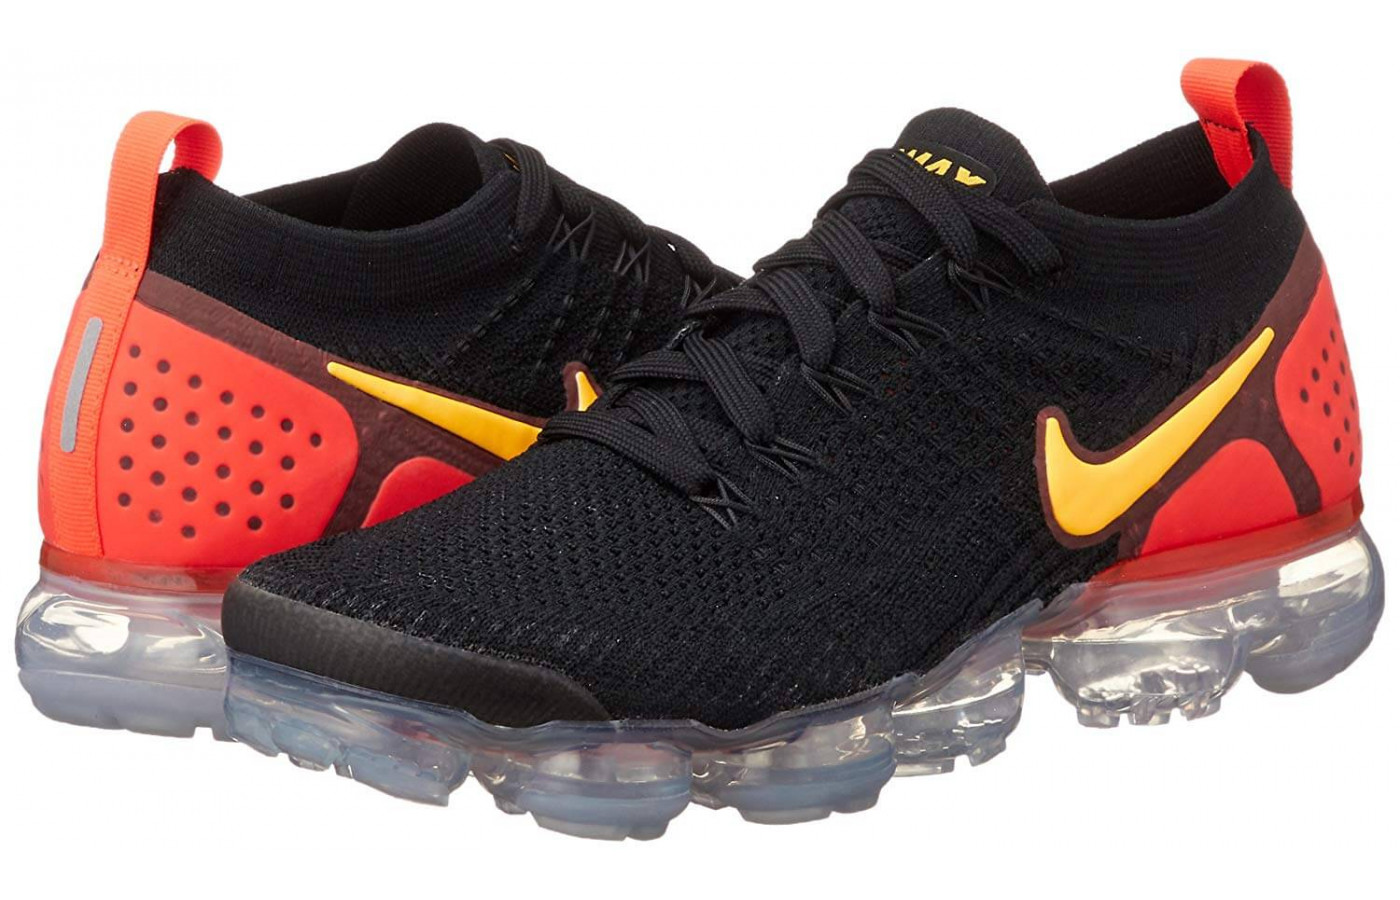 097ded00c3ed3 Nike Air VaporMax Flyknit 2 - To Buy or Not in May 2019